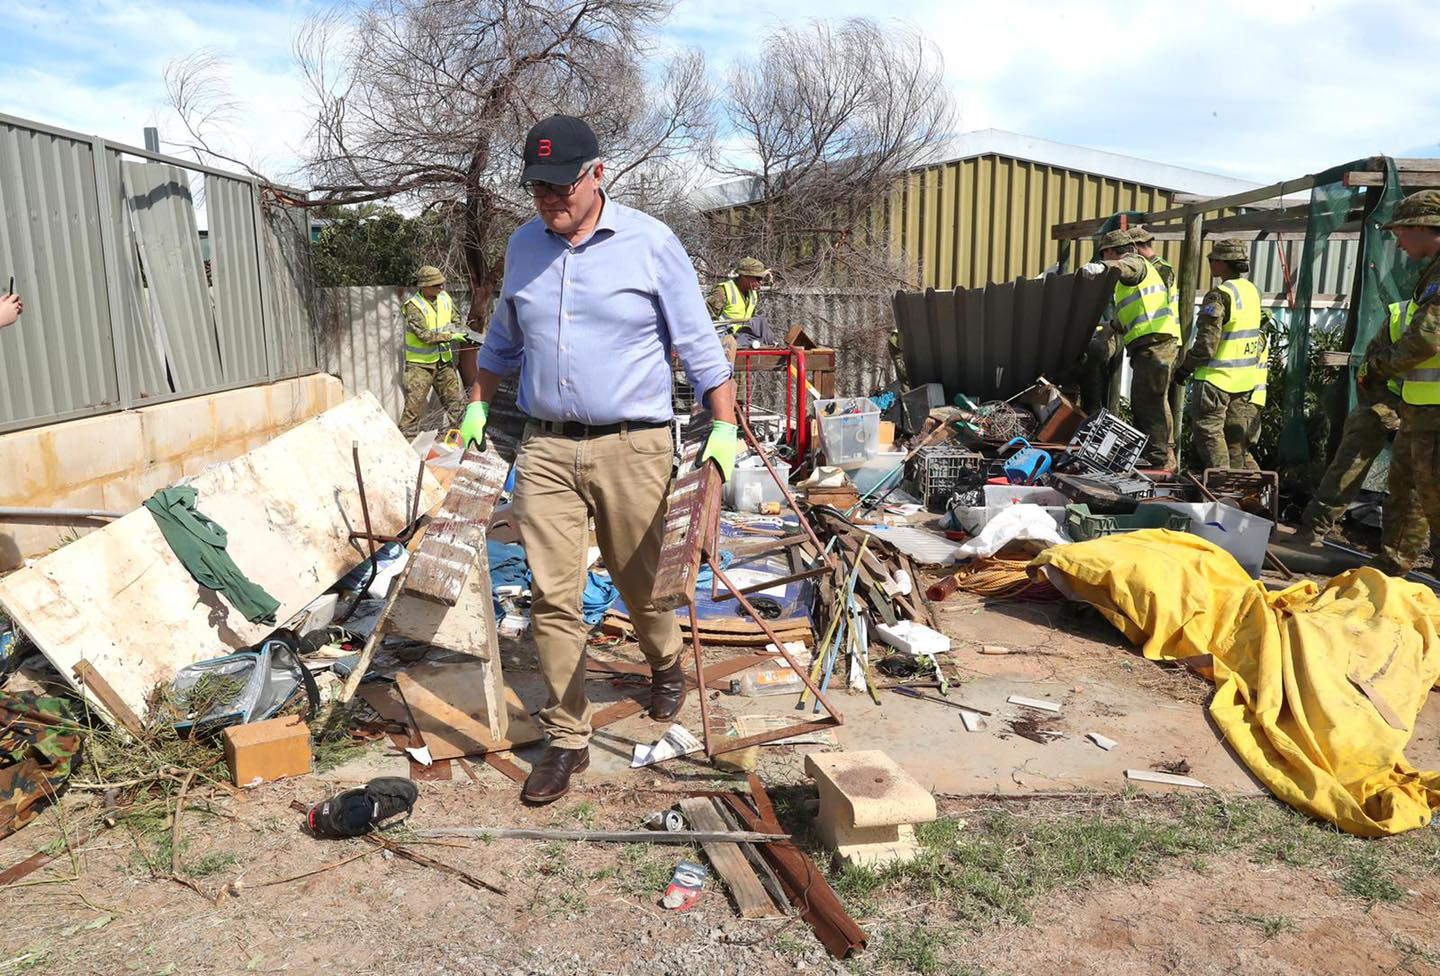 'Miracle' there was no loss of life in WA cyclone